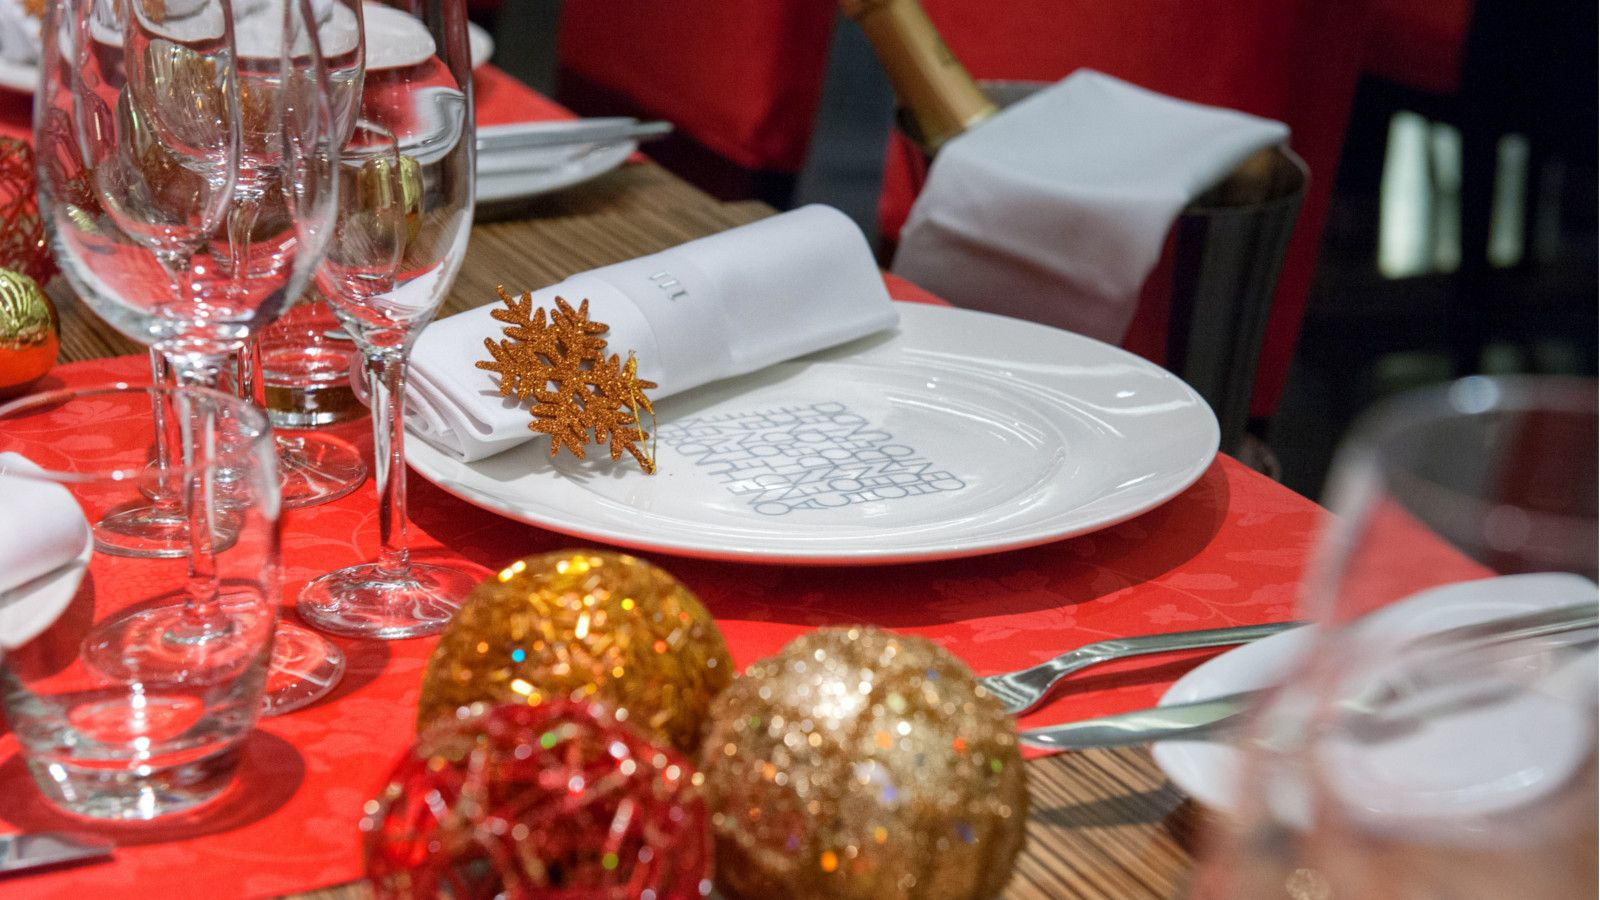 Special christmas menus for groups at Le Méridien Barcelona